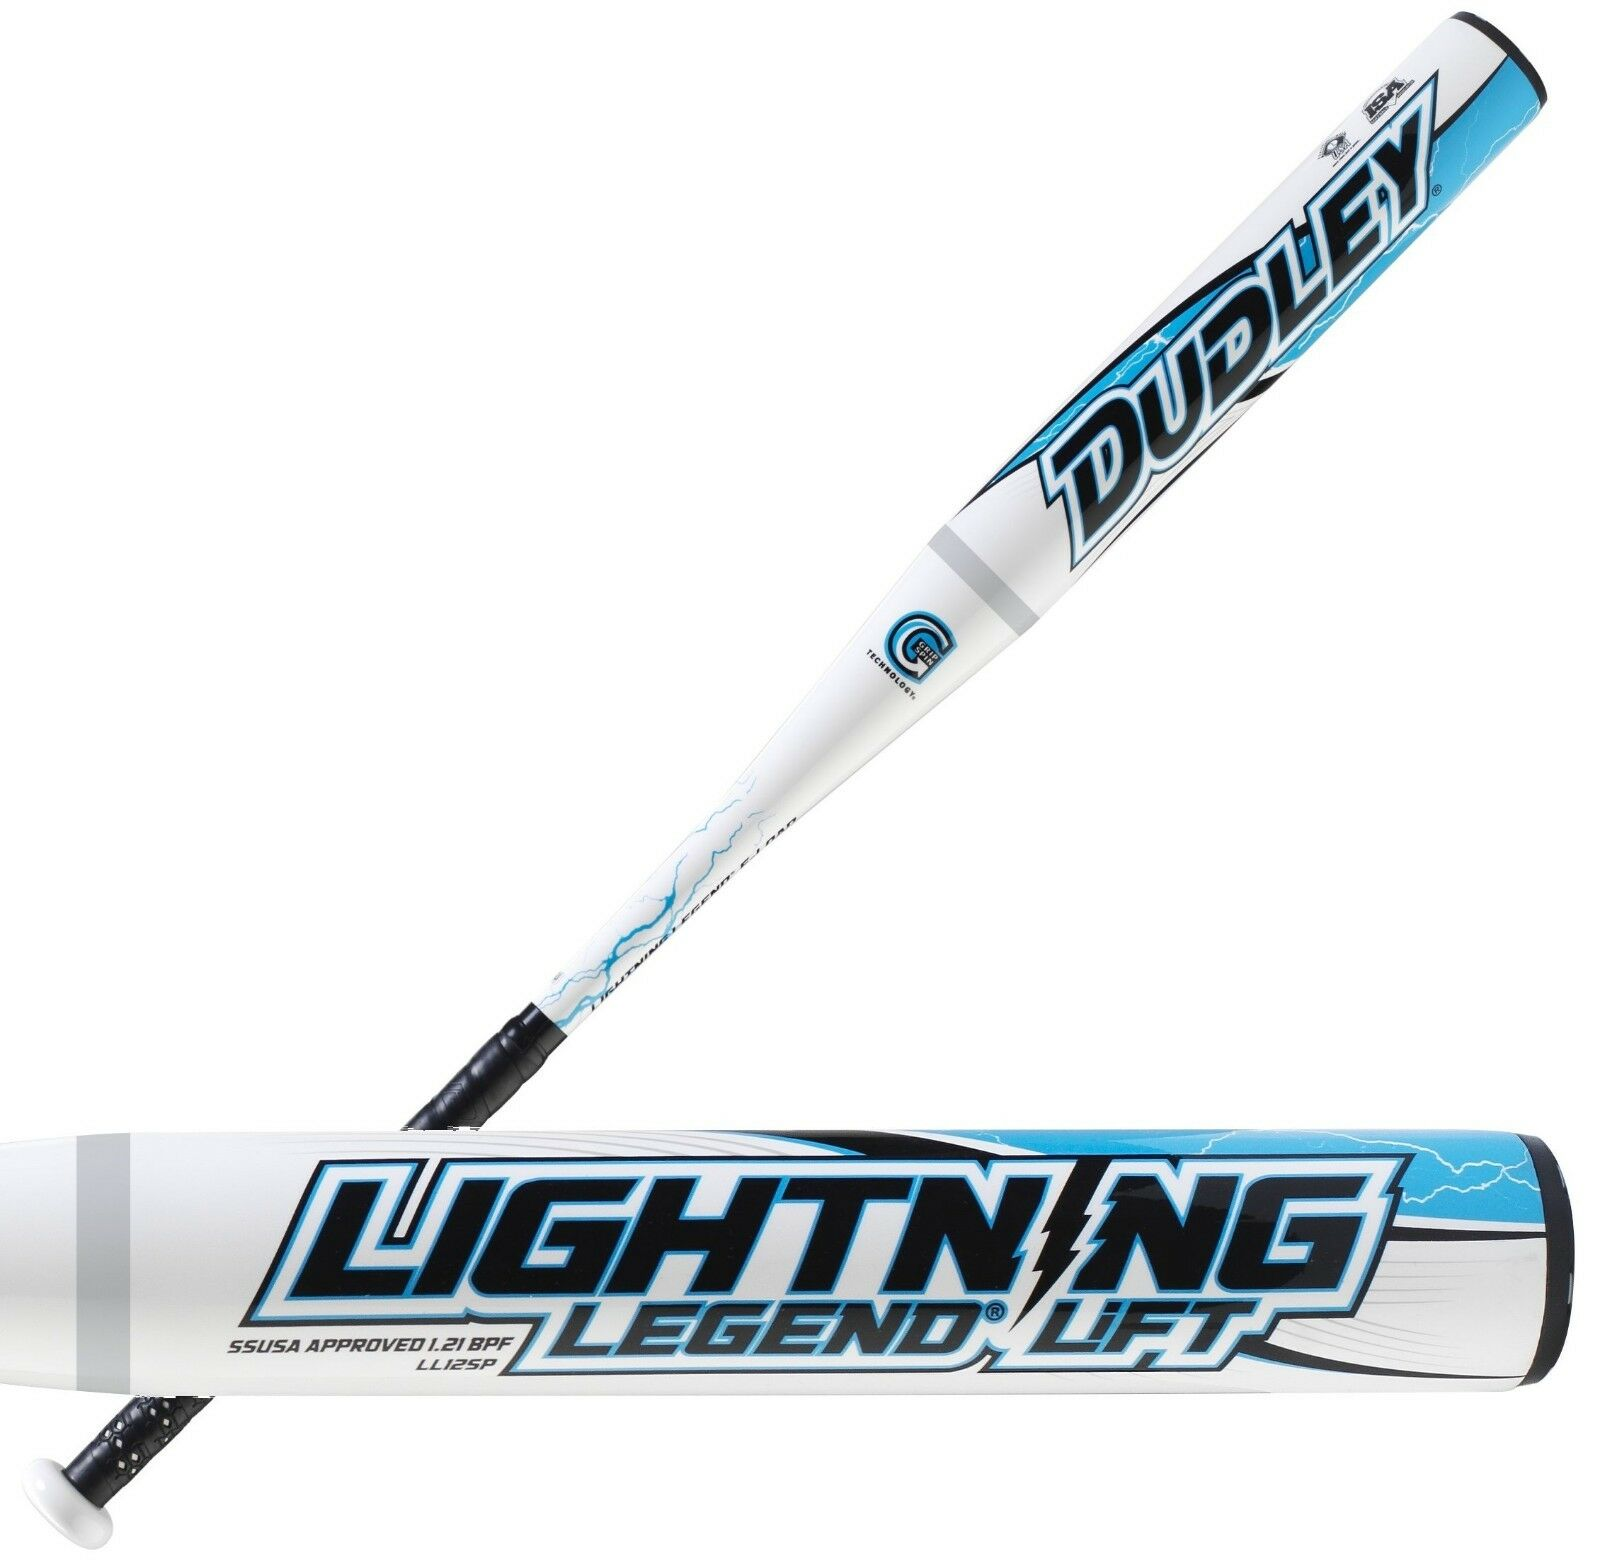 2018 Dudley Lightning Legend Lift 12  Endload 34  28oz SSUSA Softball Bat LL12SP